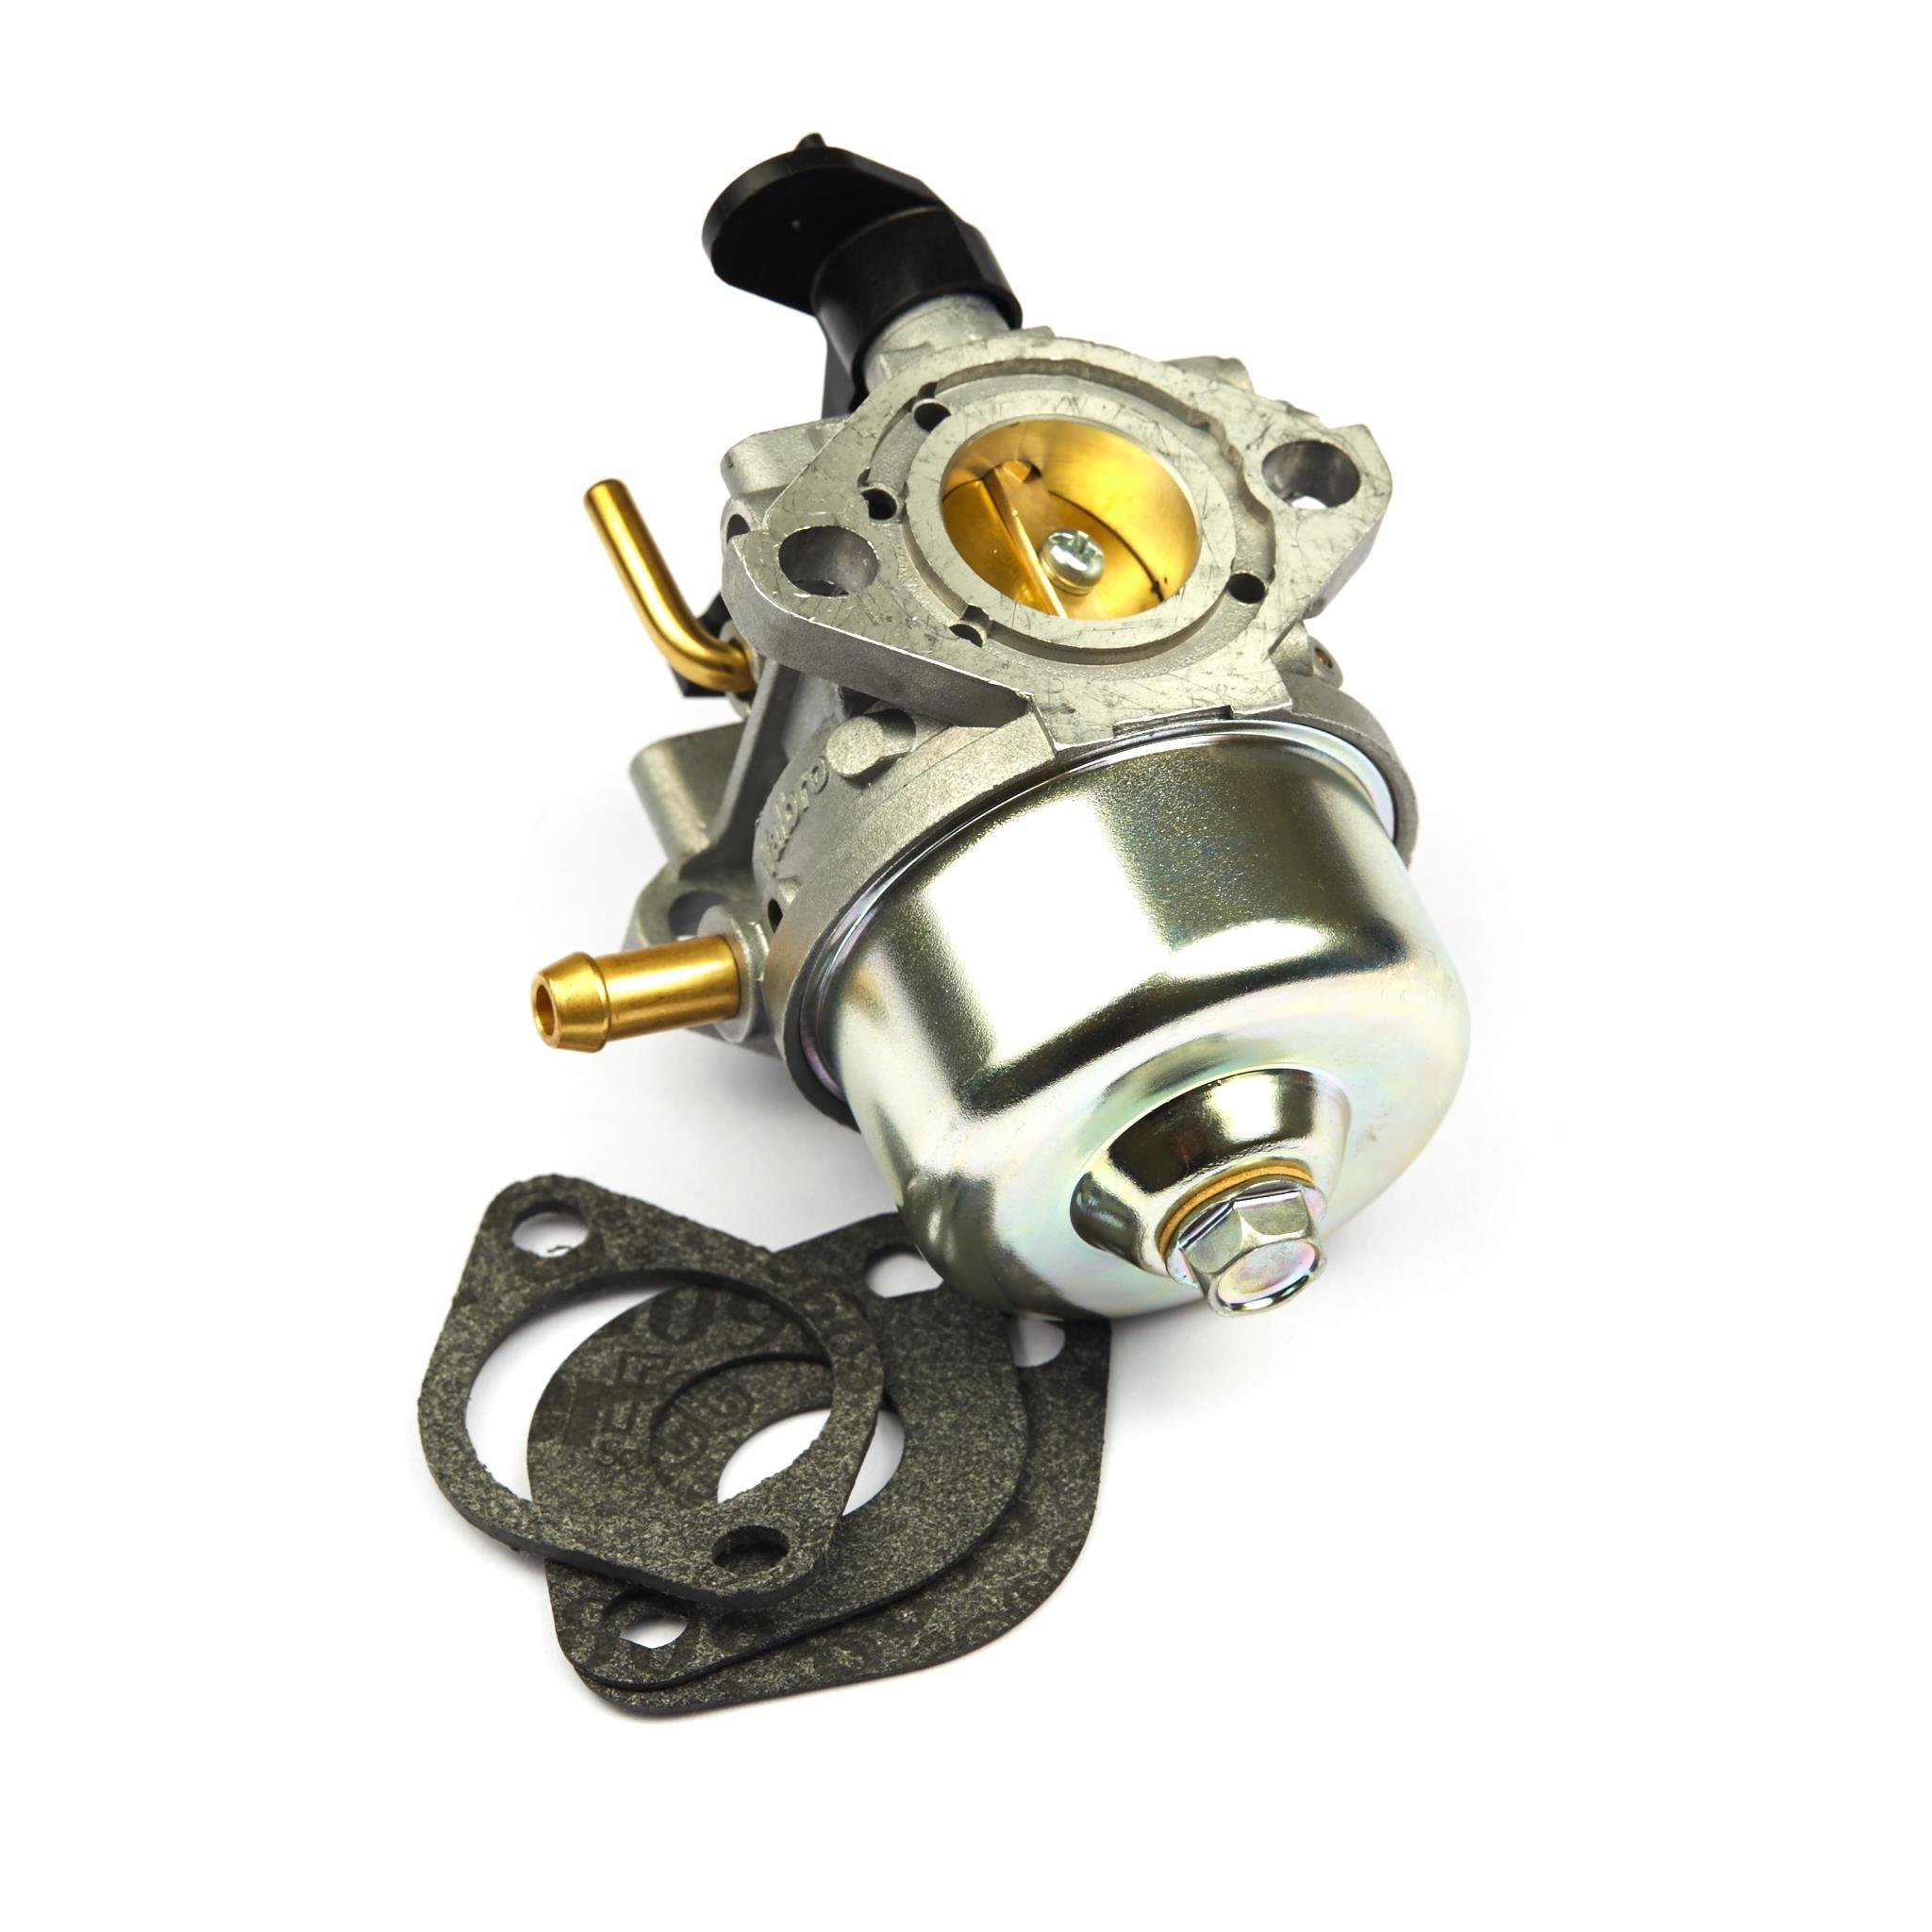 Briggs & Stratton 801396 Carburetor Replaces 801233/801255